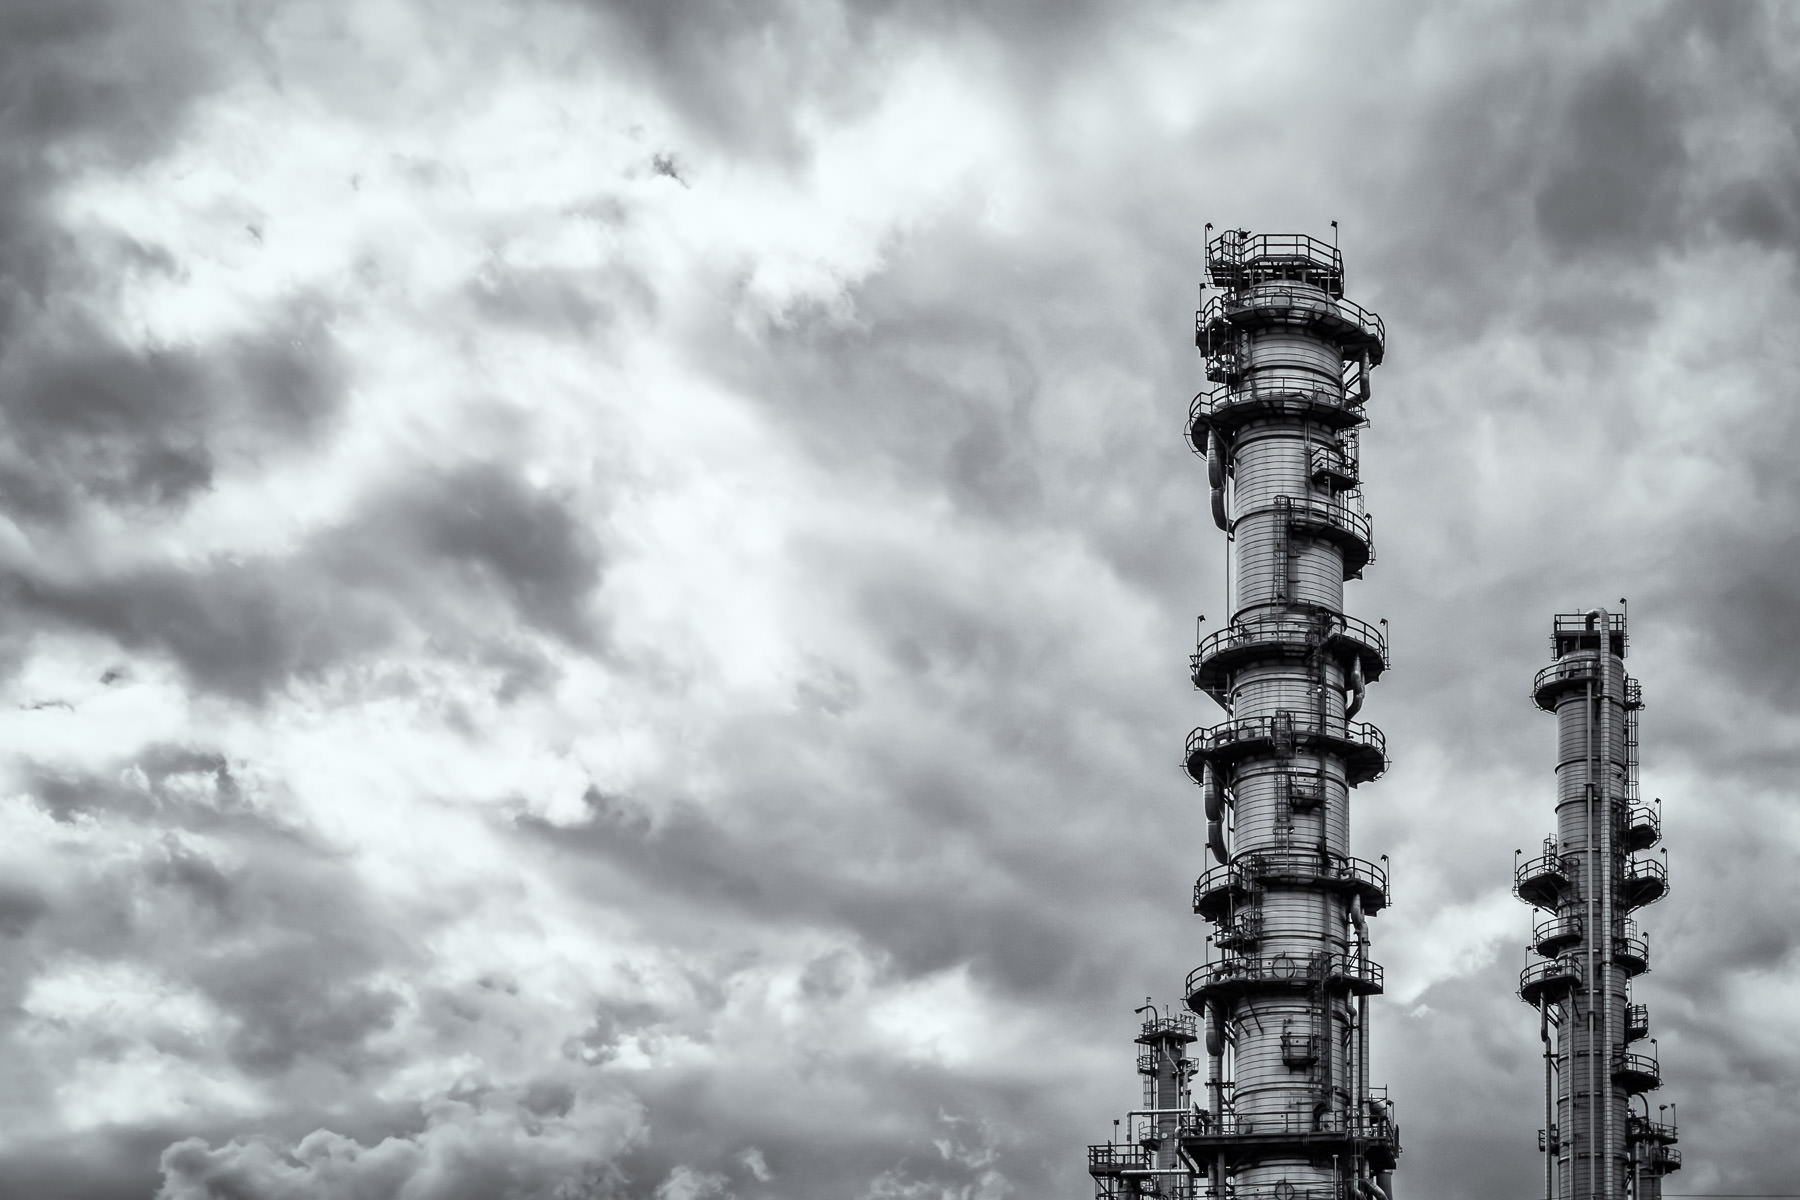 Towers at a chemical plant reach into the sky along the Houston Ship Channel, Texas.